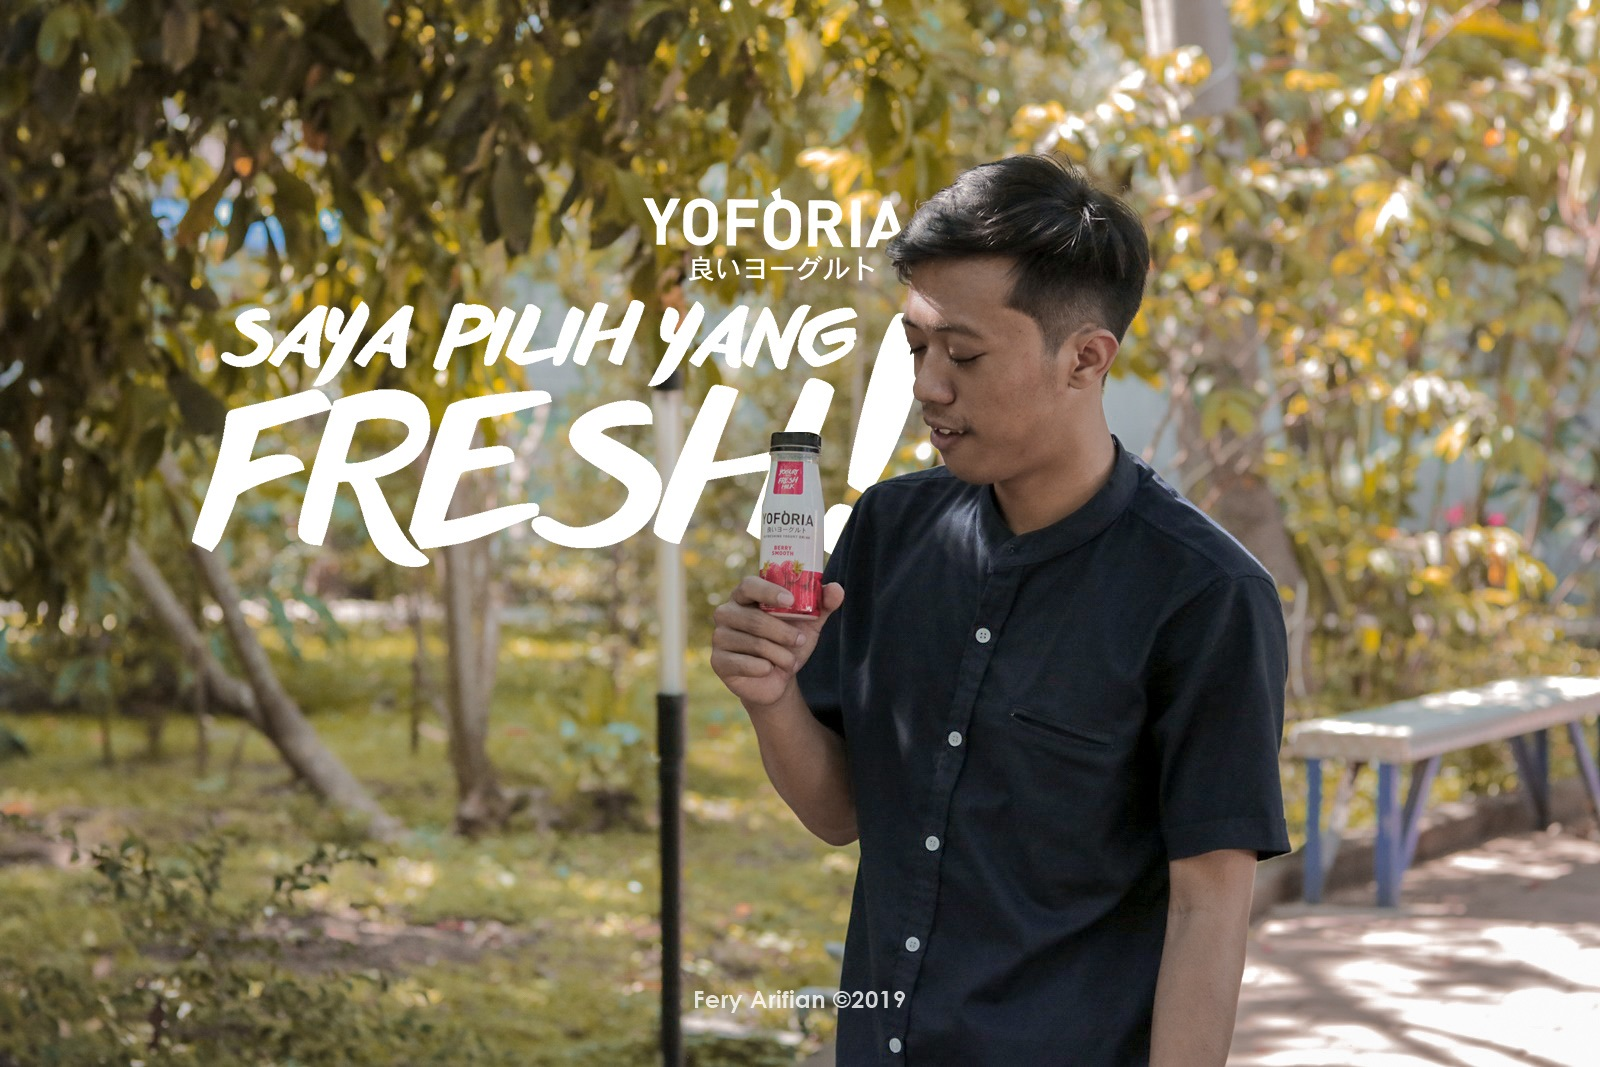 Yoforia - Yogurt With Live Prebiotics - Blog Competition